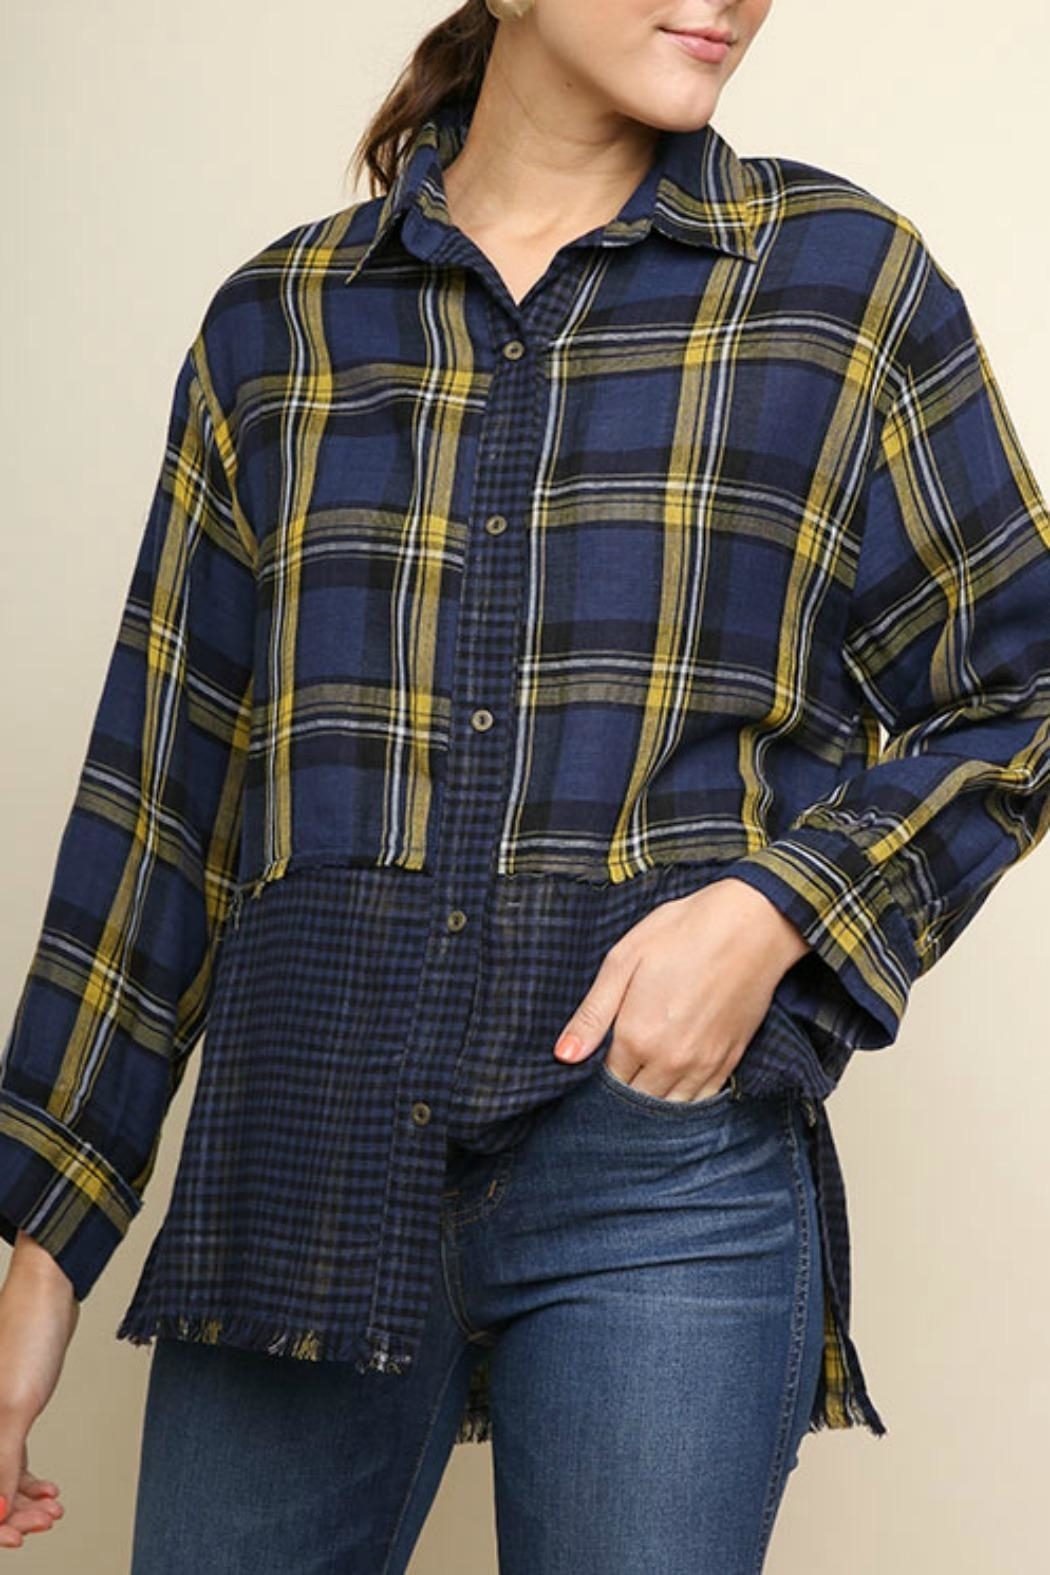 Umgee USA Plaid Checkered Button-Up - Main Image